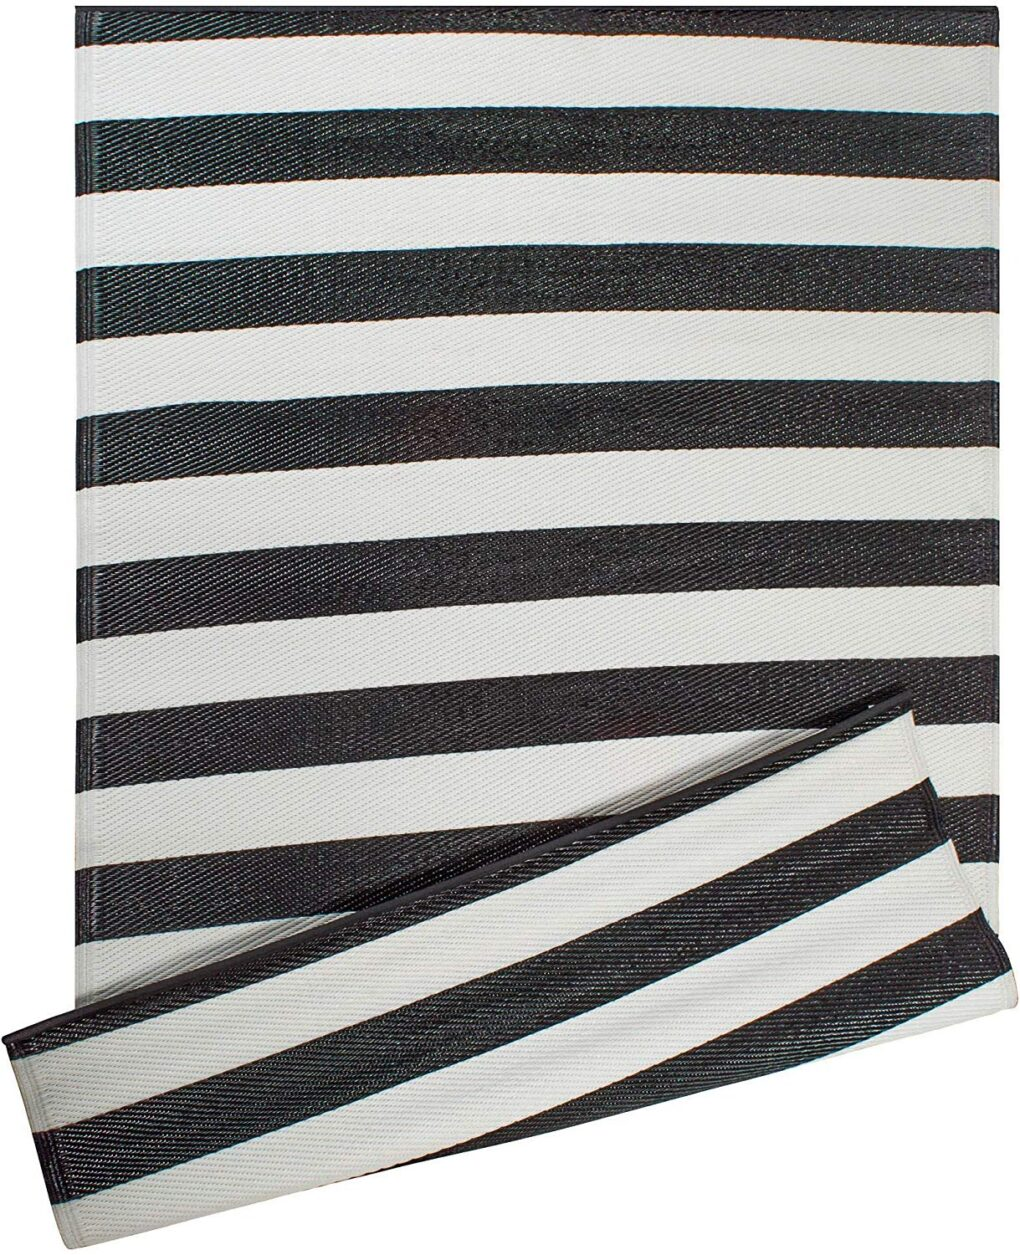 Striped indoor outdoor reversible polypropylene rug black and white